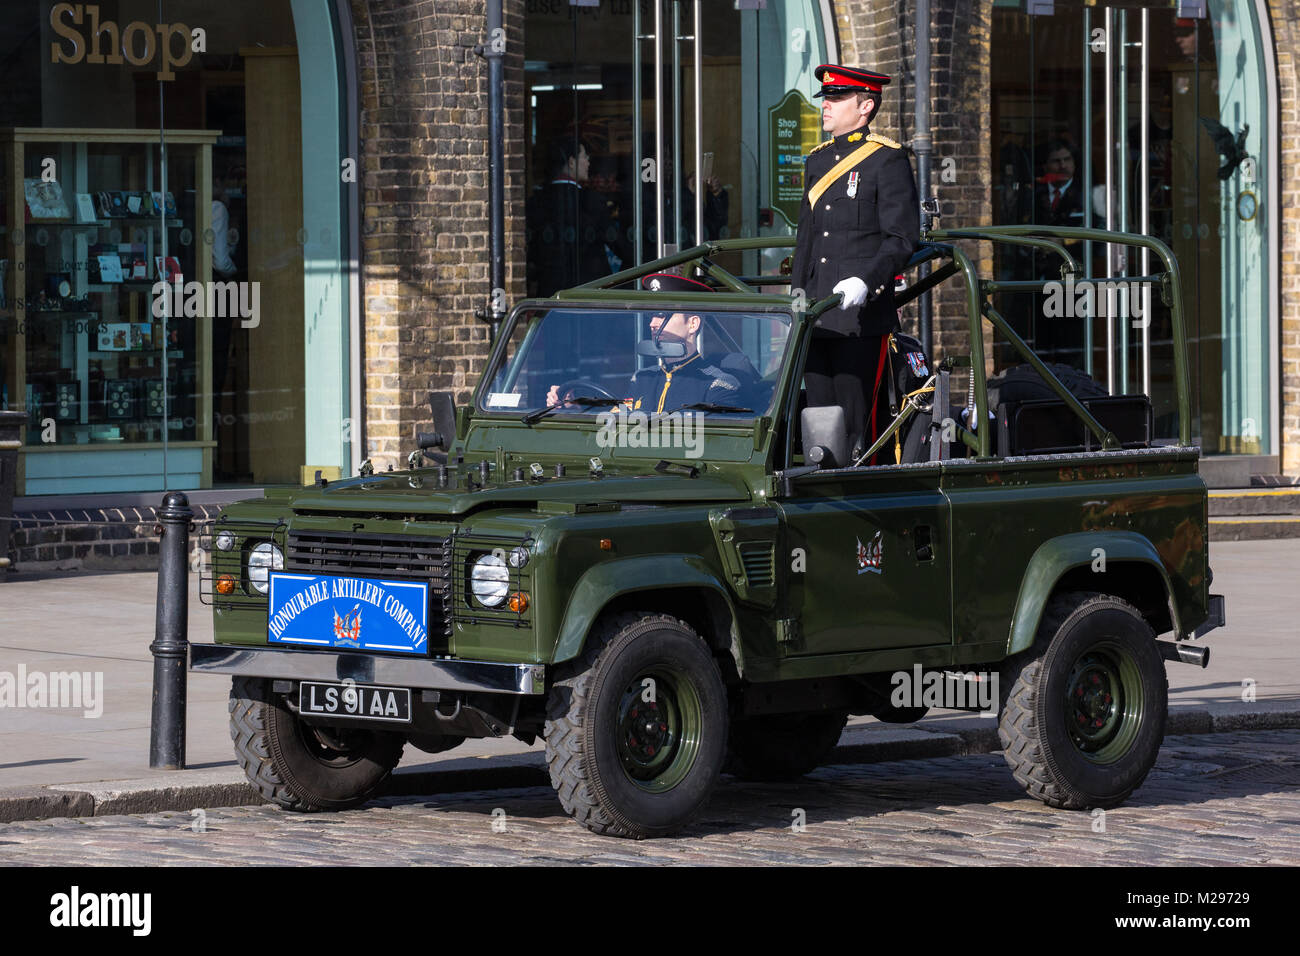 London, UK. 6th Feb, 2018. Soldiers in ceremonial attire from the Honourable Artillery Company, the City of London's - Stock Image